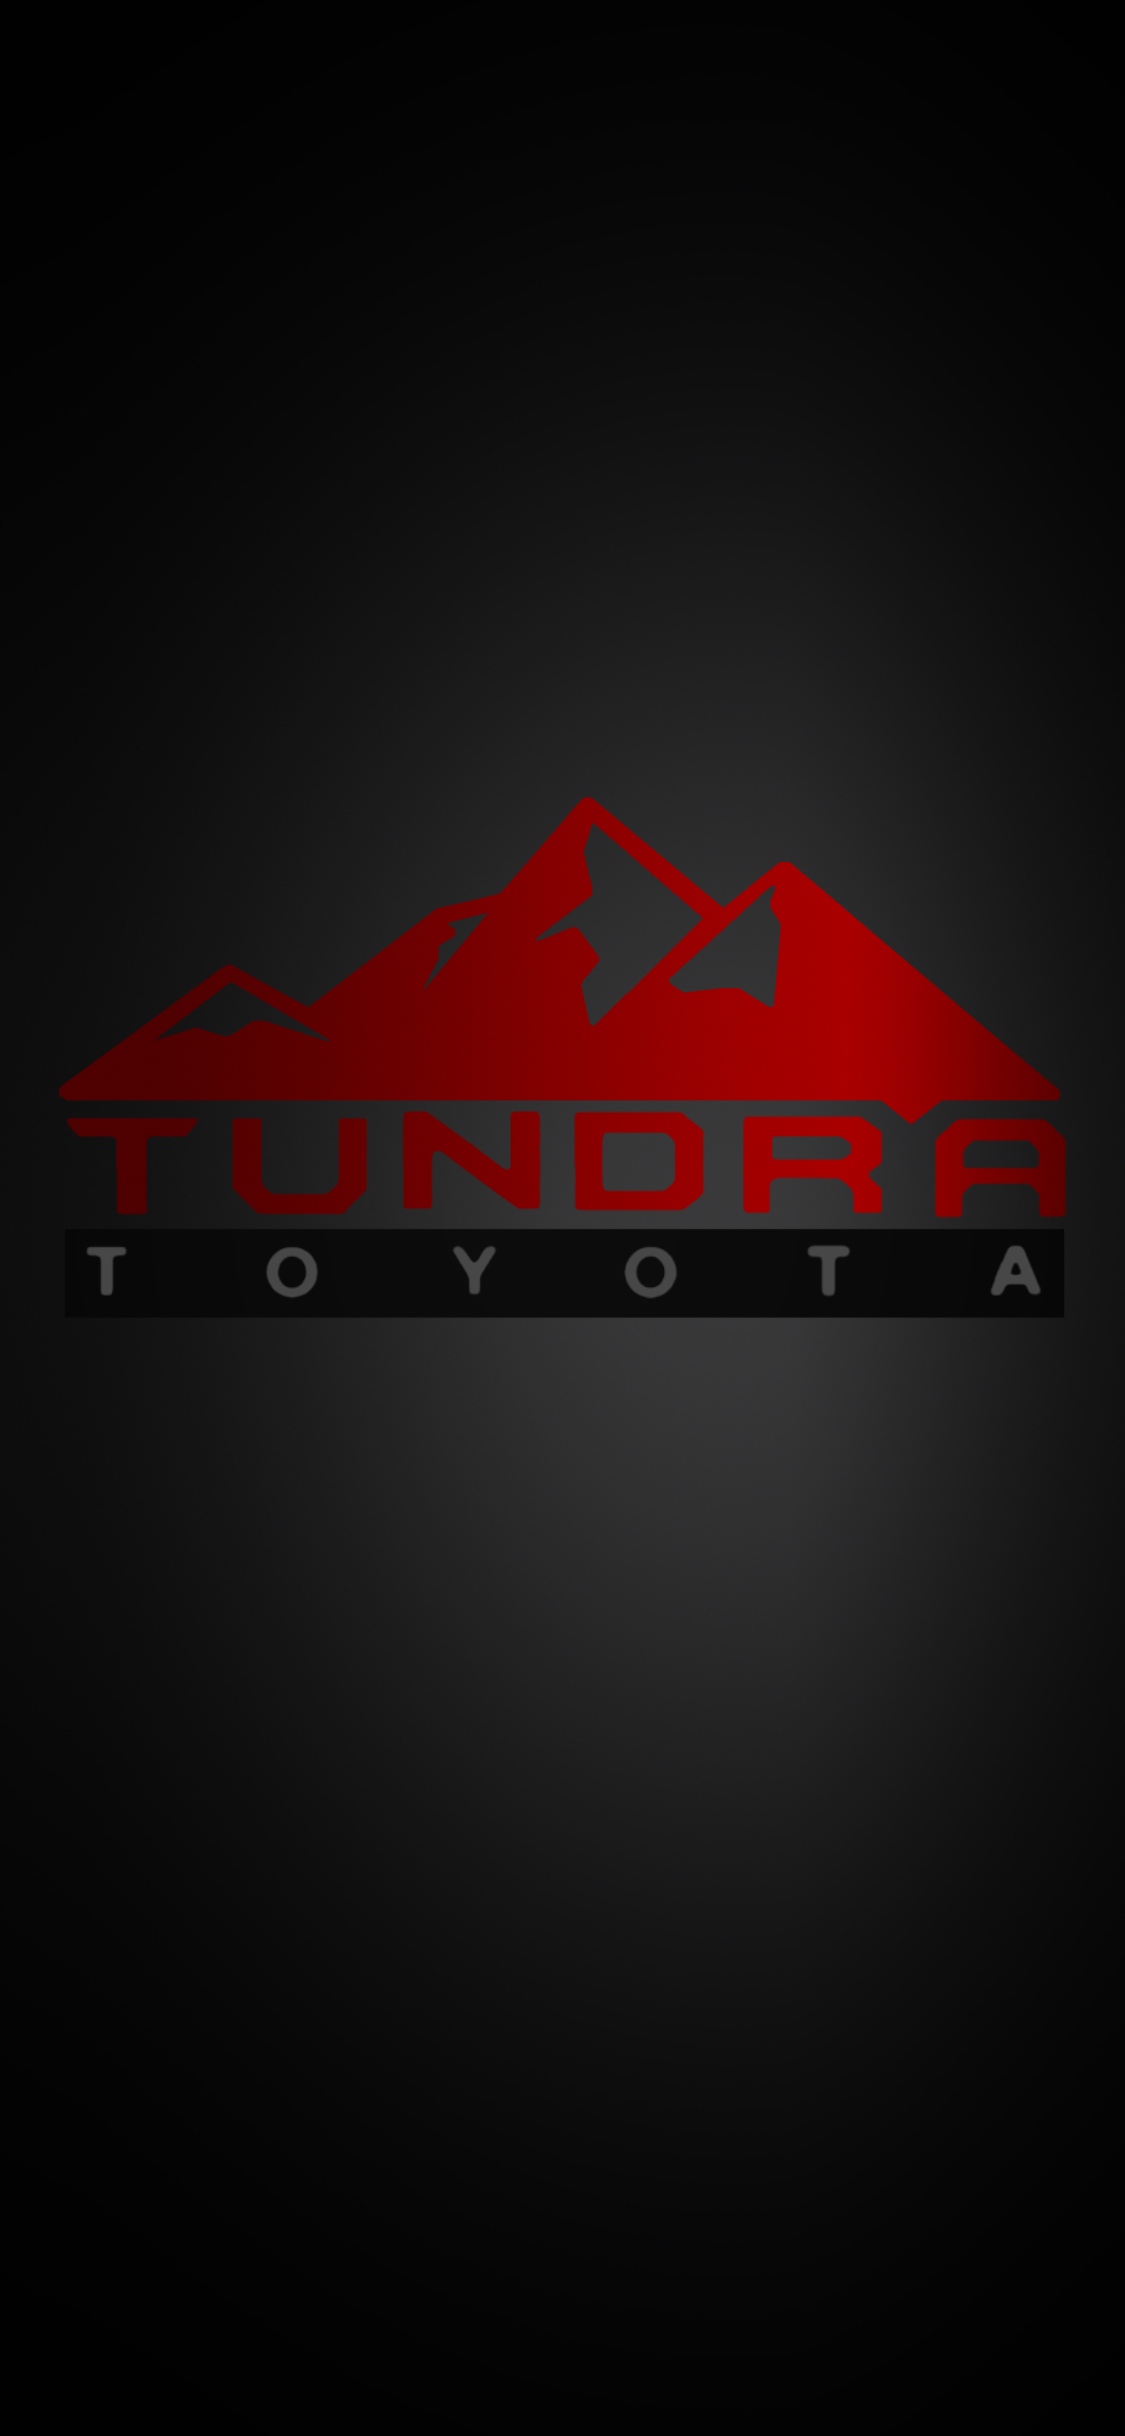 Trd Logo Wallpaper Posted By Ryan Thompson